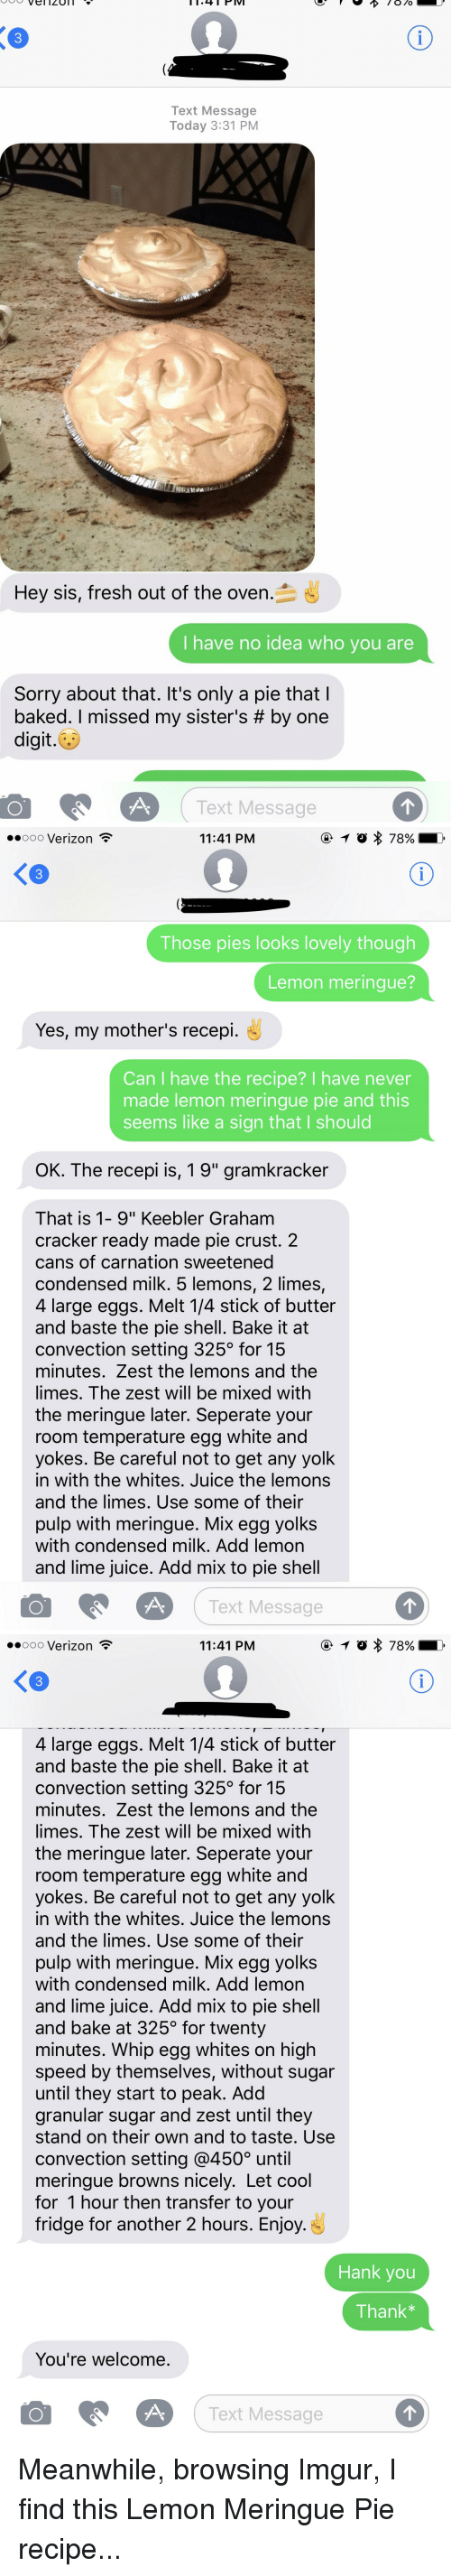 "Oldpeoplefacebook, Shell, and Fridge: Vel 4 PM  PIV  Text Message  Today 3:31 PM  Hey sis, fresh out of the oven  I have no idea who you are  Sorry about that. It's only a pie that  baked. missed my sister's by one  digit.  O Text Message   ooooo Verizon  11:41 PM  Those pies looks lovely though  Lemon meringue?  Yes, my mother's recepi.  Can have the recipe? I have never  made lemon meringue pie and this  seems like a sign that l should  OK. The recepi is, 19"" gramkracker  That is 1- 9"" Keebler Graham  cracker ready made pie crust. 2  cans of carnation sweetened  condensed milk. 5 lemons, 2 limes,  4 large eggs. Melt 14 stick of butter  and baste the pie shell. Bake it at  convection setting 325 for 15  minutes. Zest the lemons and the  limes. The zest will be mixed with  the meringue later. Seperate your  room temperature egg white and  yokes. Be careful not to get any yolk  in with the whites. Juice the lemons  and the limes. Use some of their  pulp with meringue. Mix egg yolks  with condensed milk. Add lemon  and lime juice. Add mix to pie shell  O A Text Message   ooooo Verizon  11:41 PM  4 large eggs. Melt 14 stick of butter  and baste the pie shell. Bake it at  convection setting 325 for 15  minutes. Zest the lemons and the  limes. The zest will be mixed with  the meringue later. Seperate your  room temperature egg white and  yokes. Be careful not to get any yolk  in with the whites. Juice the lemons  and the limes. Use some of their  pulp with meringue. Mix egg yolks  with condensed milk. Add lemon  and lime juice. Add mix to pie shell  and bake at 325 for twenty  minutes. Whip egg whites on high  speed by themselves, without sugar  until they start to peak. Add  granular sugar and zest until they  stand on their own and to taste. Use  convection setting @4500 until  meringue browns nicely. Let cool  for 1 hour then transfer to your  fridge for another 2 hours. Enjoy  Hank you  Thank  You're welcome  O A.  Text Message Meanwhile, browsing Imgur, I find this Lemon Meringue Pie recipe..."